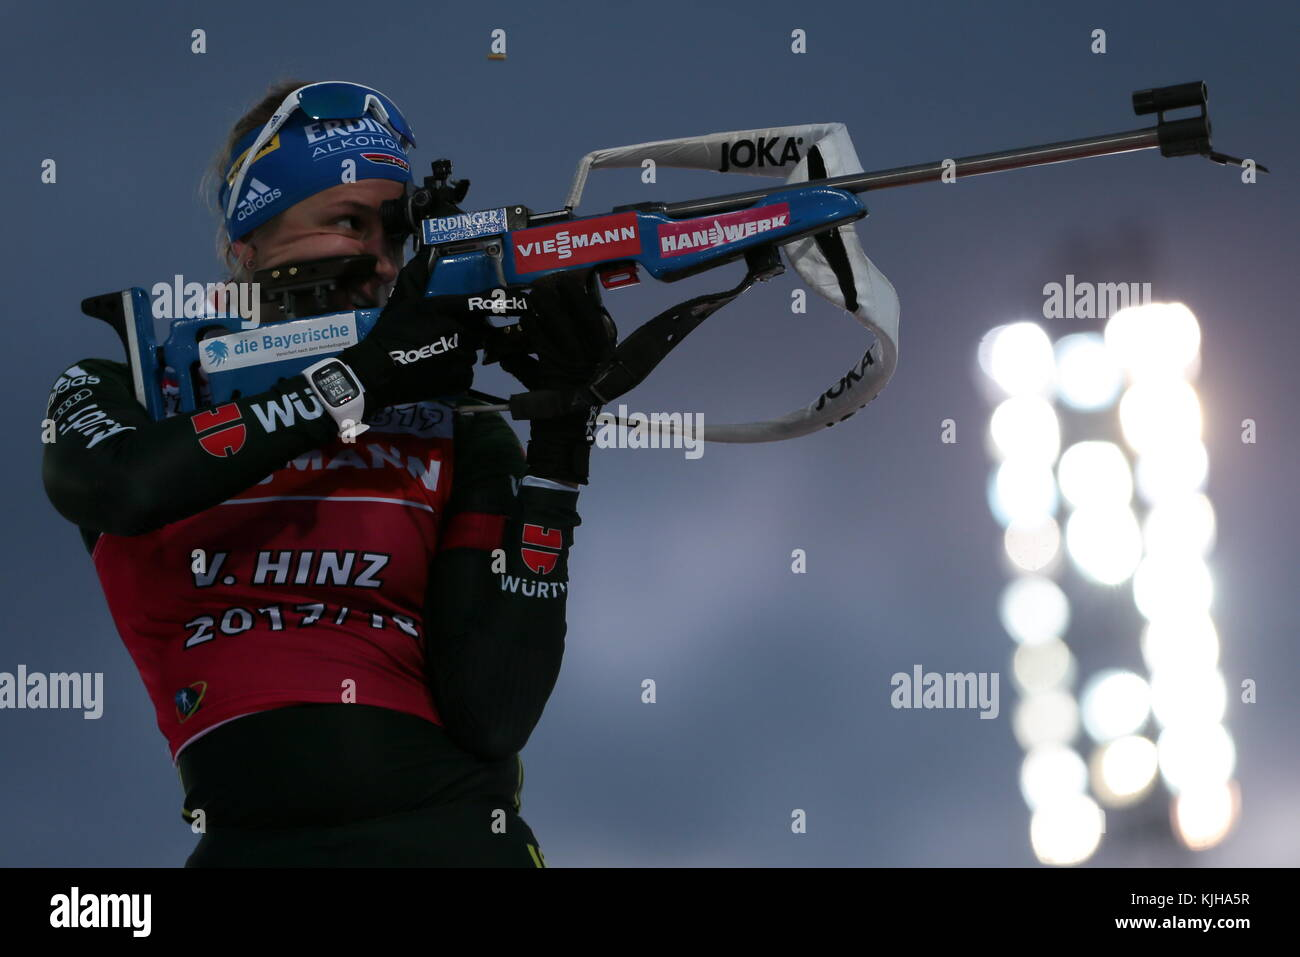 Ostersund, Sweden. 25th Nov, 2017. Biathlete Vanessa Hinz of Germany training before the start of the 2017/18 Season - Stock Image